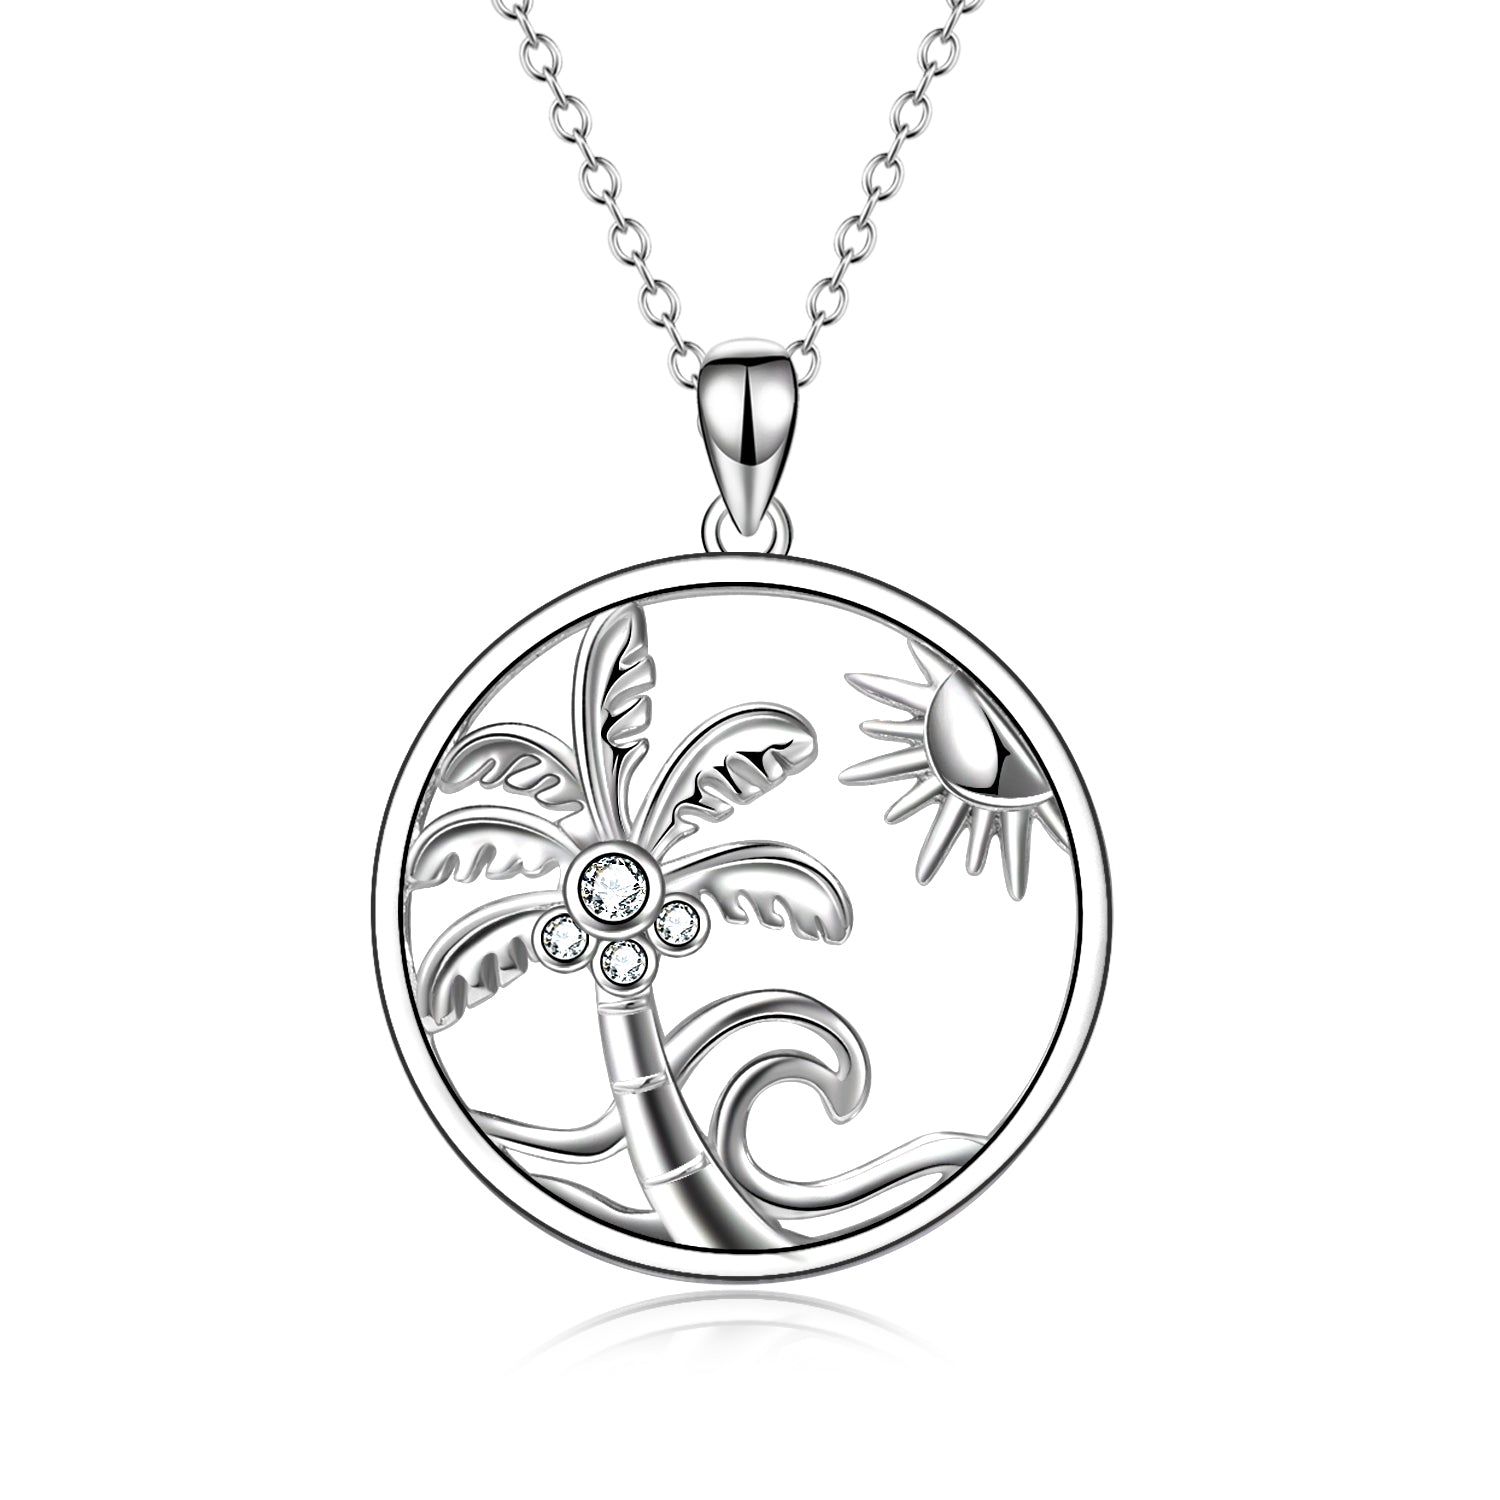 Silver Jewelry Summer Seaside Palm Tree Shape Necklace Design